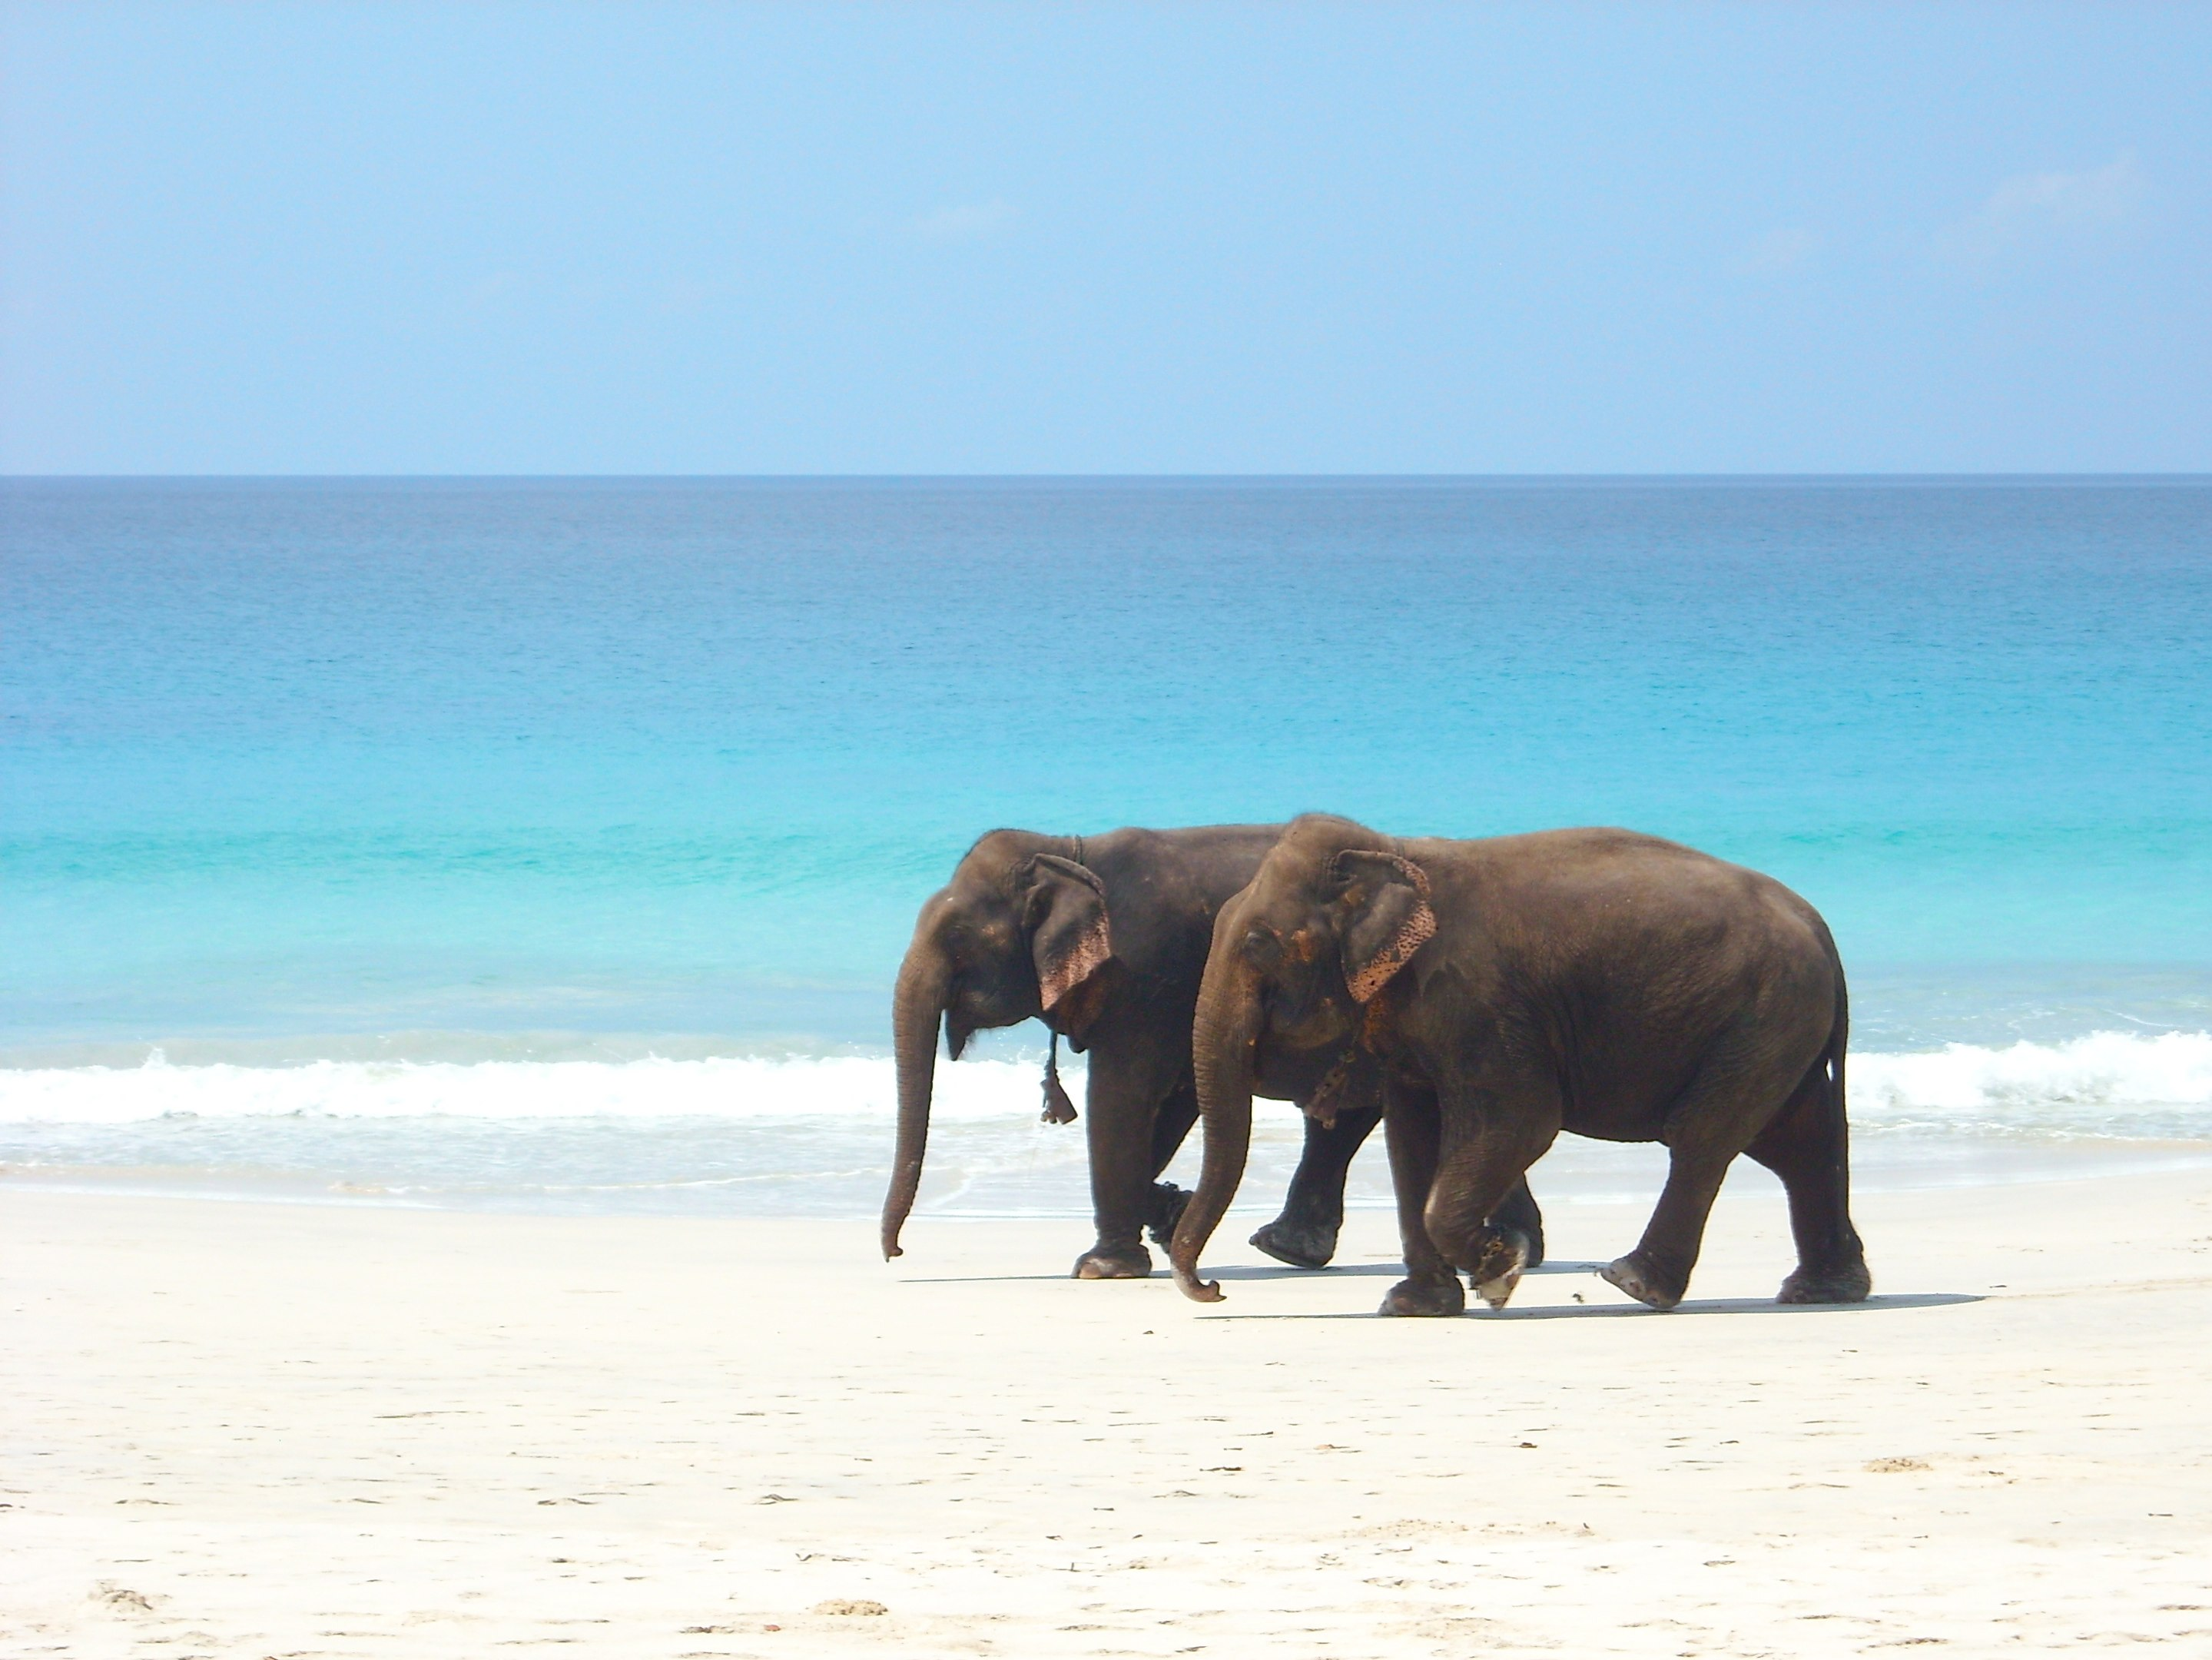 andaman_beach_elephants